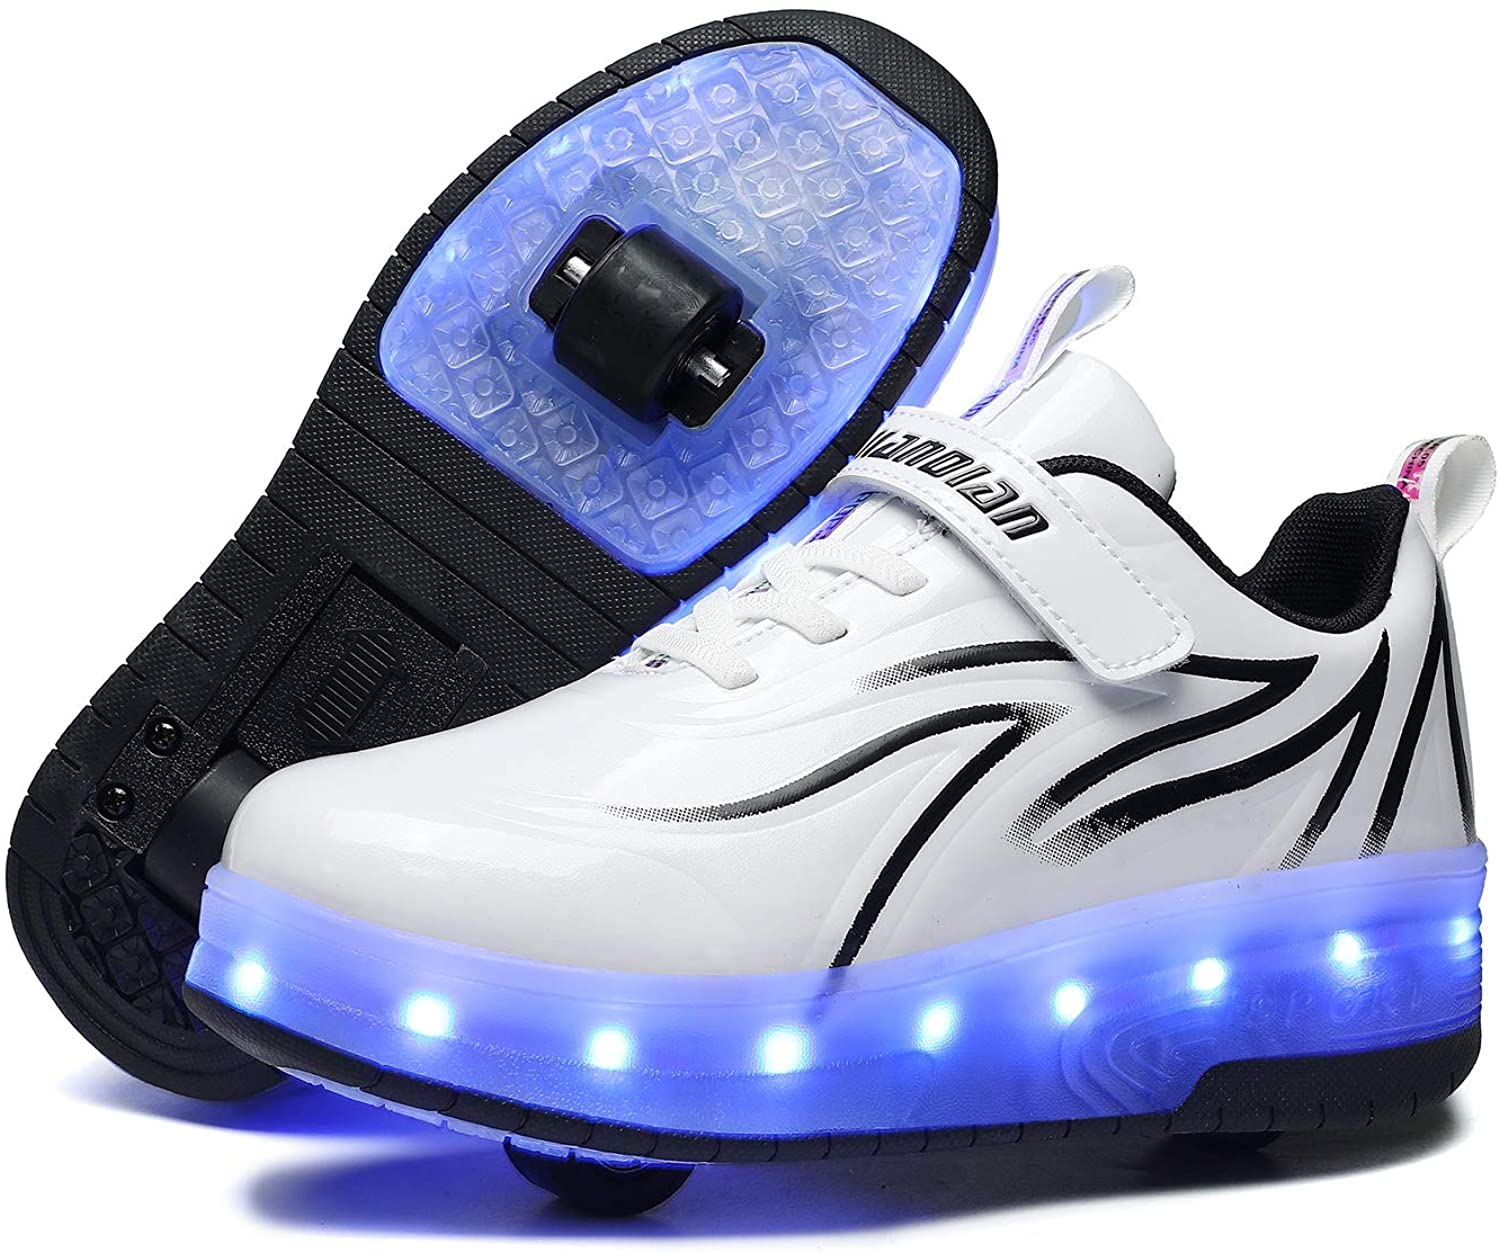 Ufatansy Popular Genuine Free Shipping USB Charging Shoes Roller Girls Shoe Skate